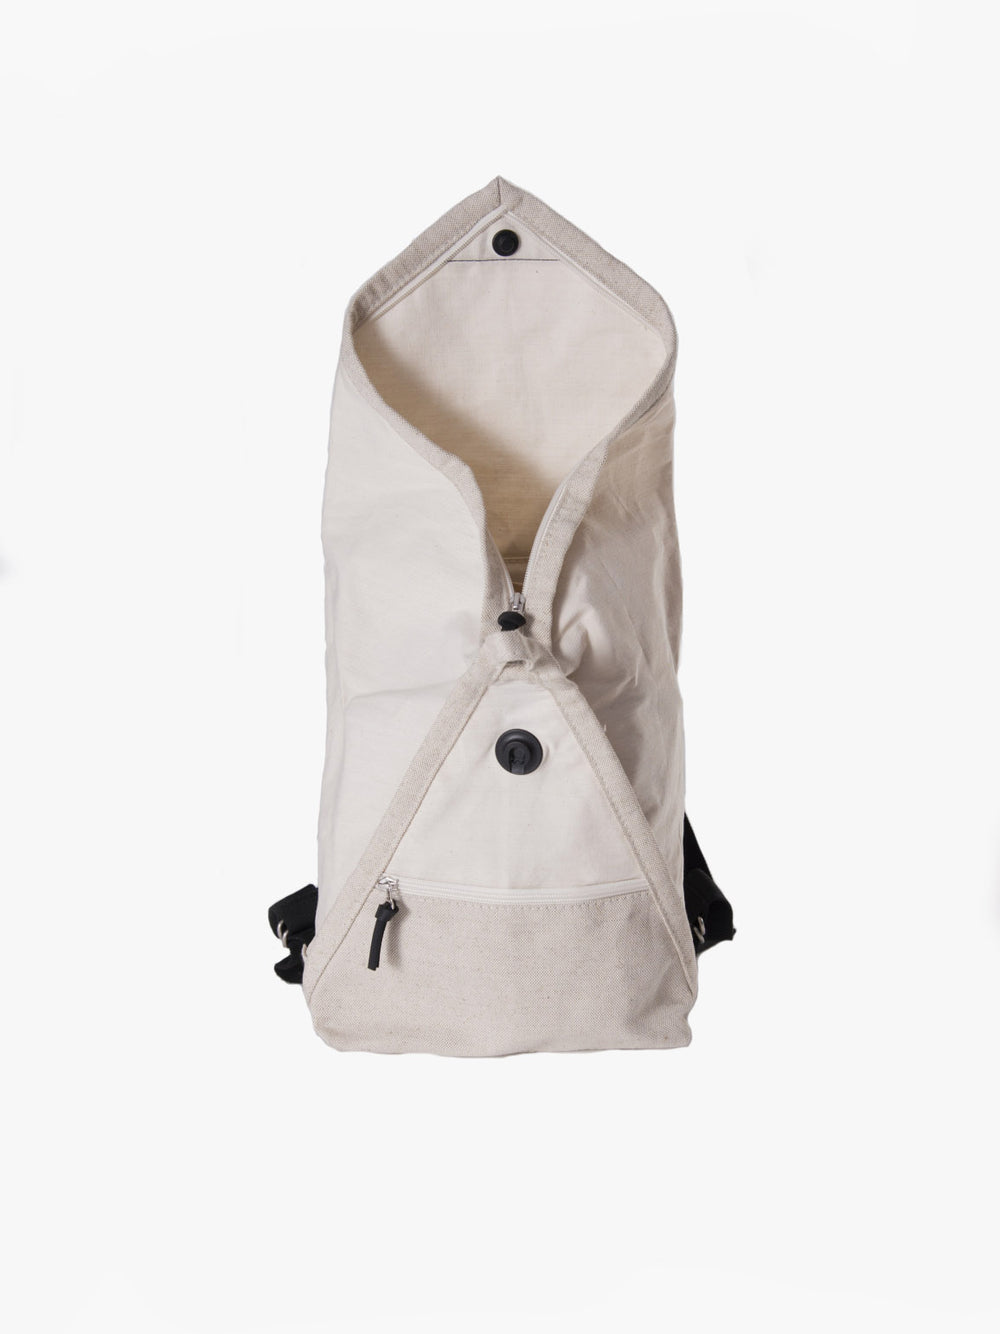 Catamaran backpack features an original opening option